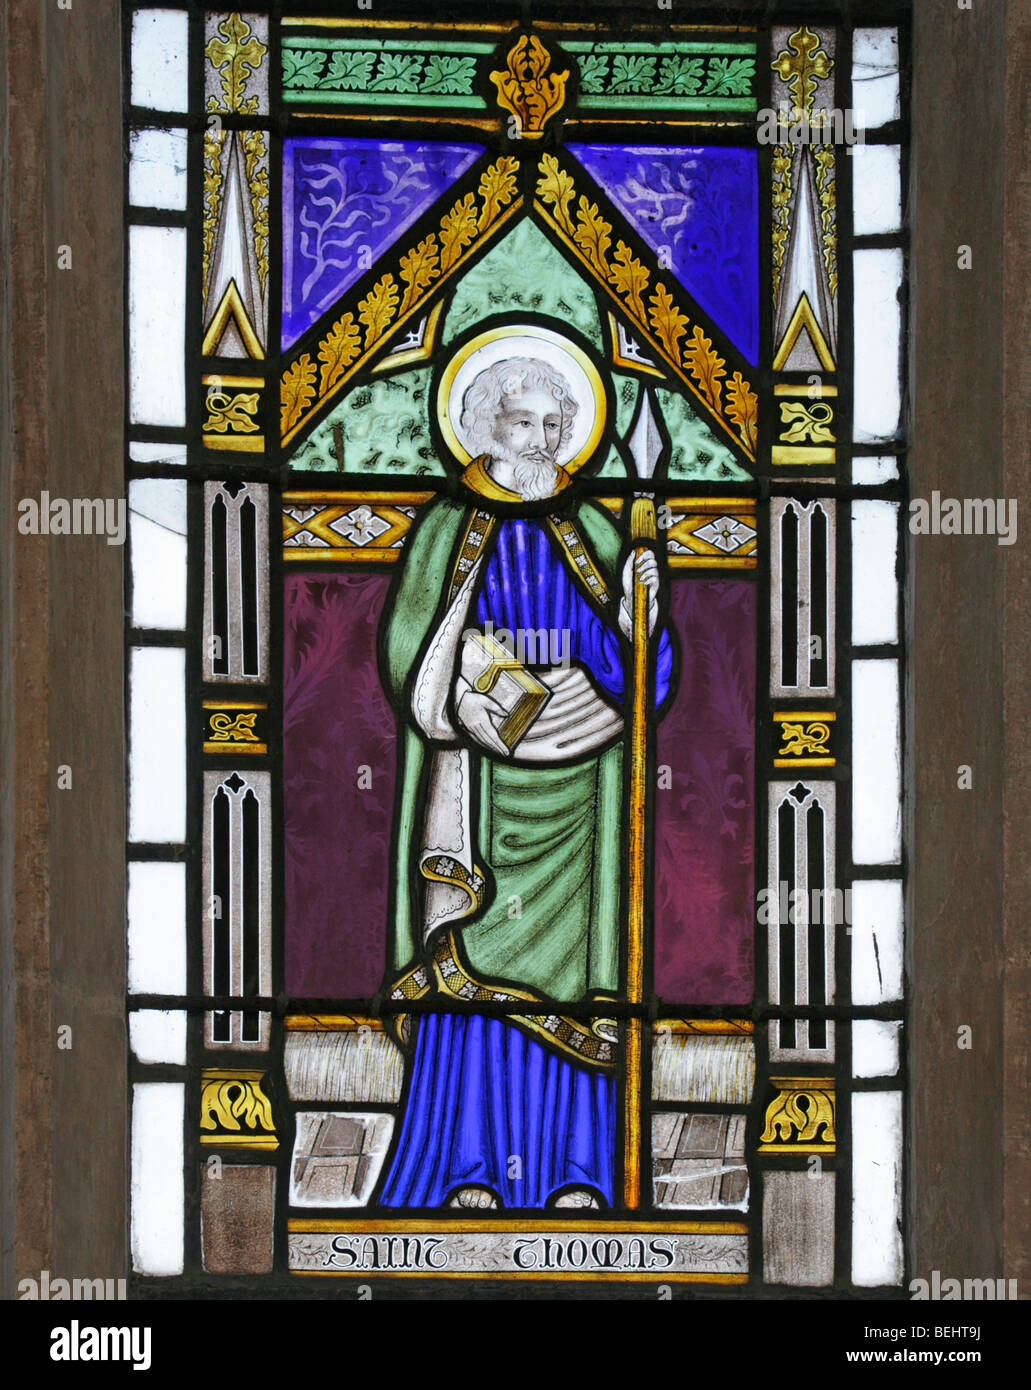 A stained glass window depicting St Thomas the Apostle, All Saints Church, Wighton, Norfolk by Joseph Grant of Costessey - Stock Image